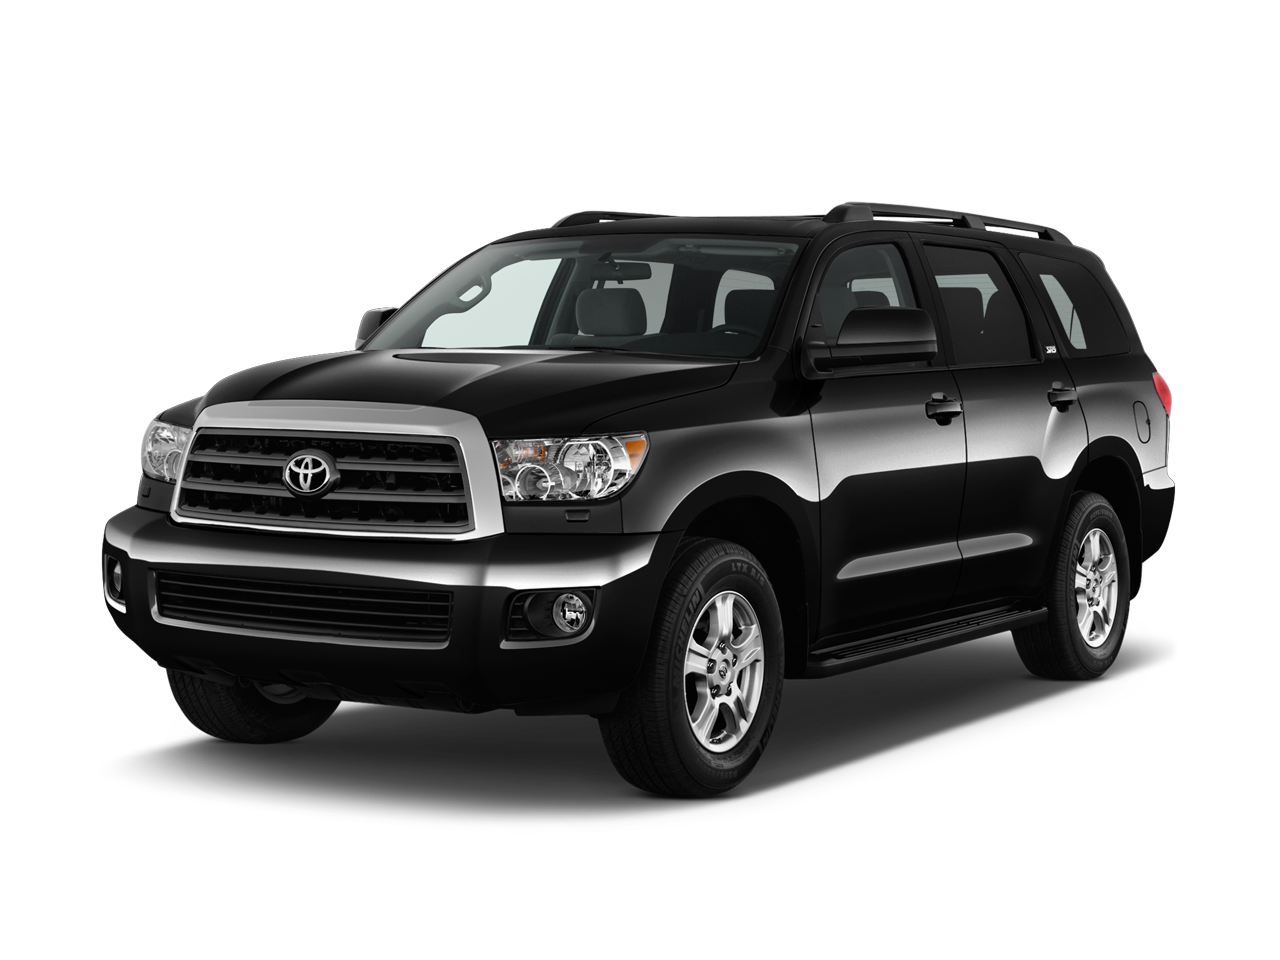 Crown Toyota Of Lawrence Toyota Dealer Lawrence Ks New